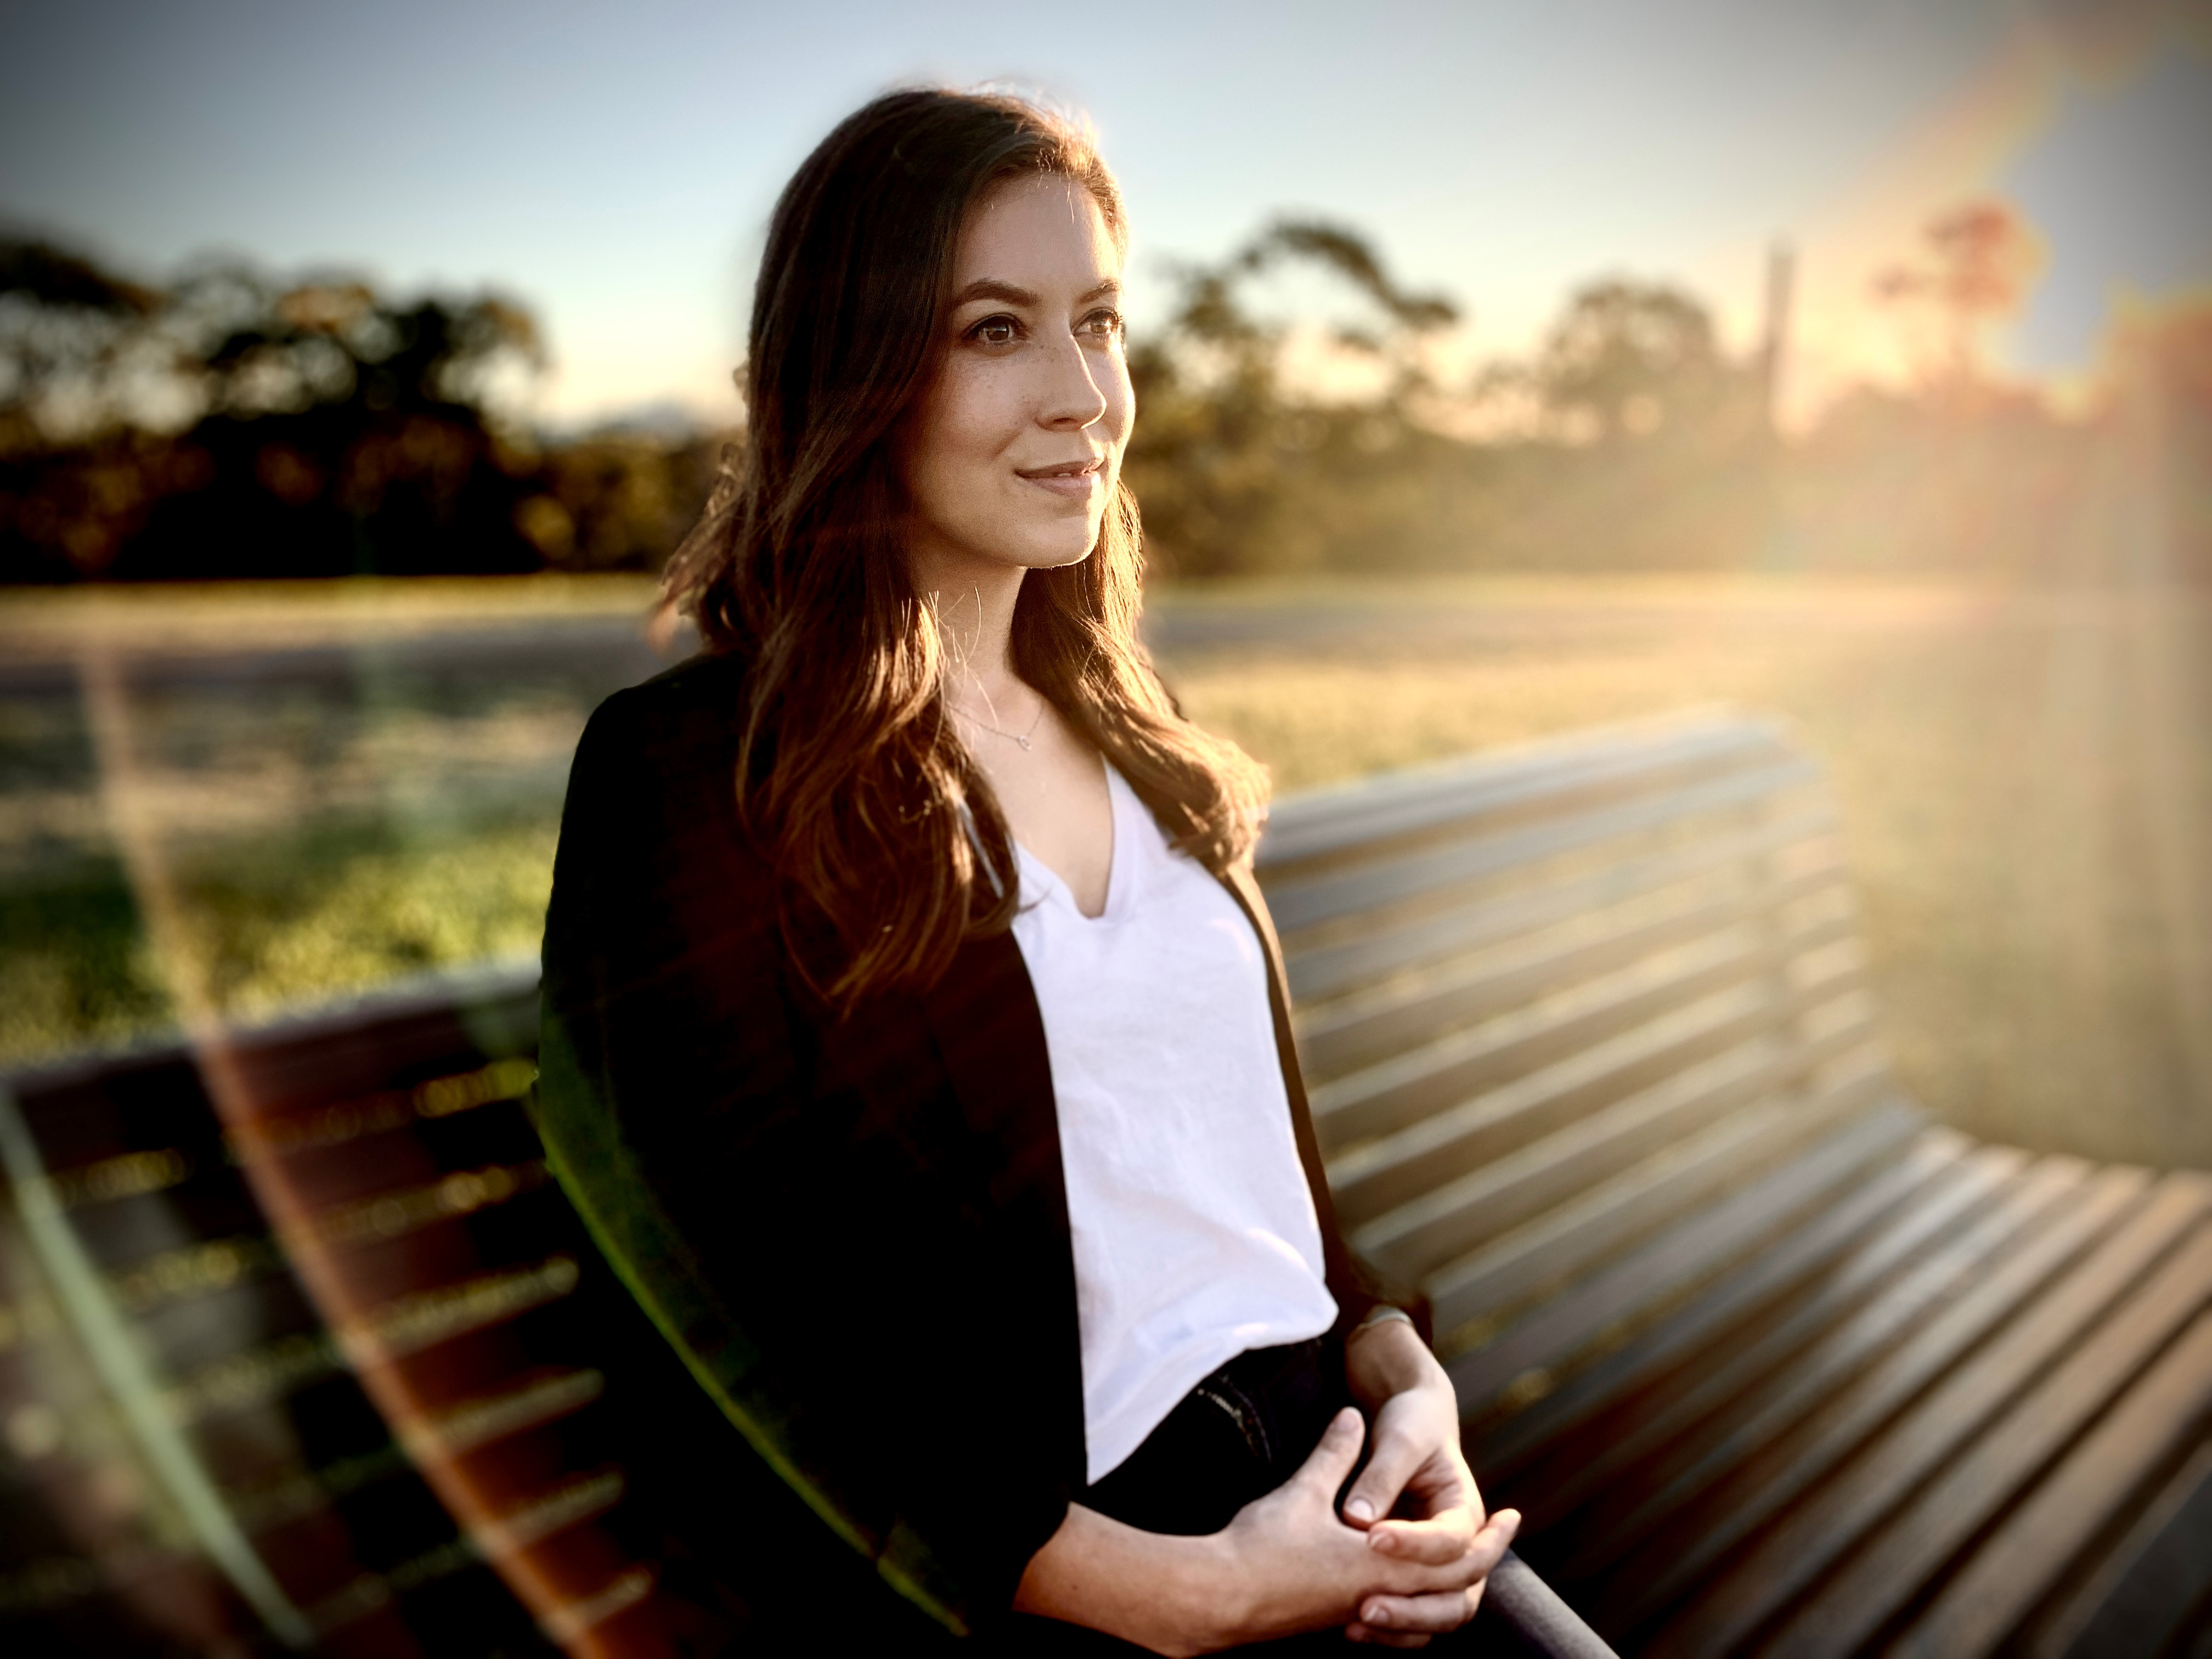 Sharlie Raymond sits on a park bench and looks into the distance